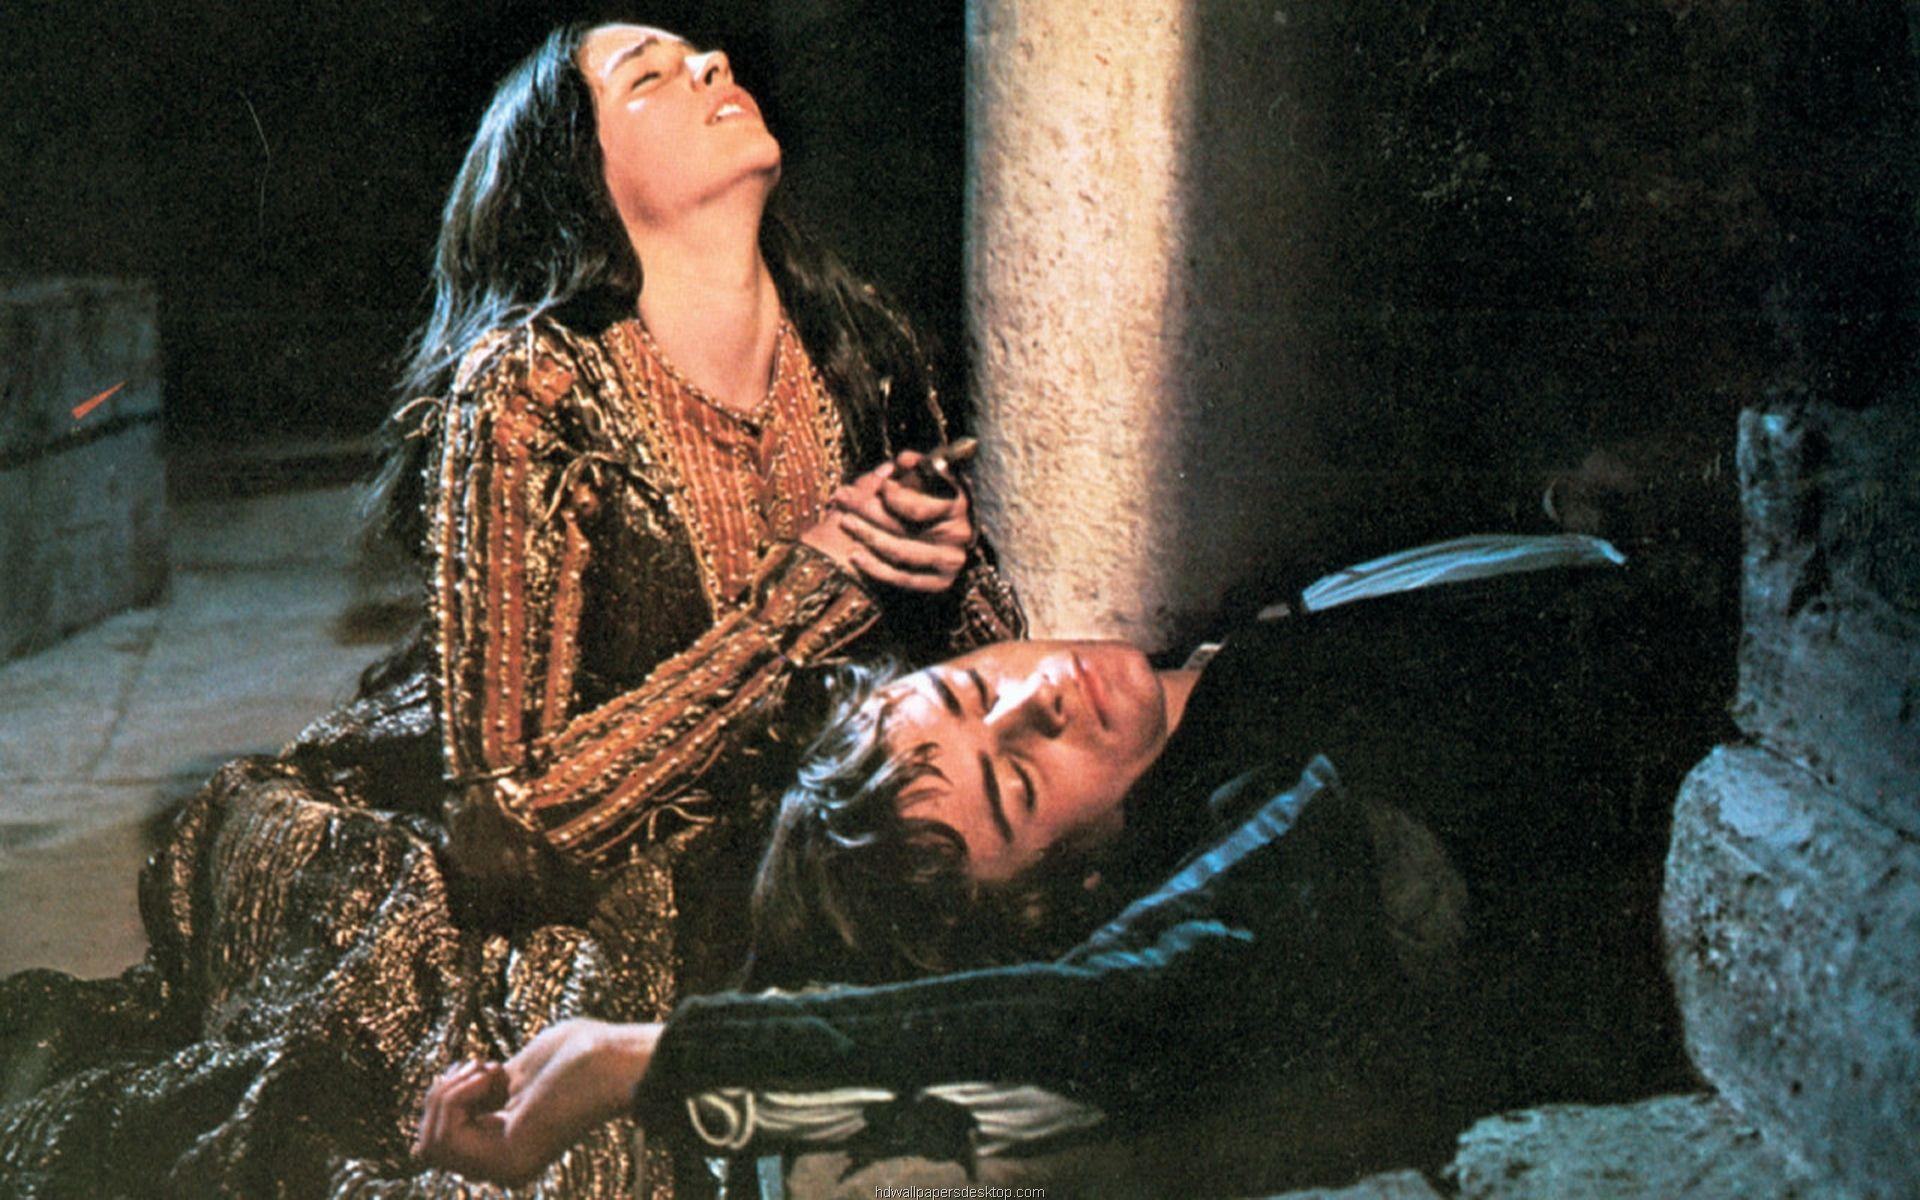 romeo and juliet film scene analysis While creating multiple film adaptations of the classic shakespearean tragedy, romeo and juliet, many people have tried to establish the same, timeless magic of the.